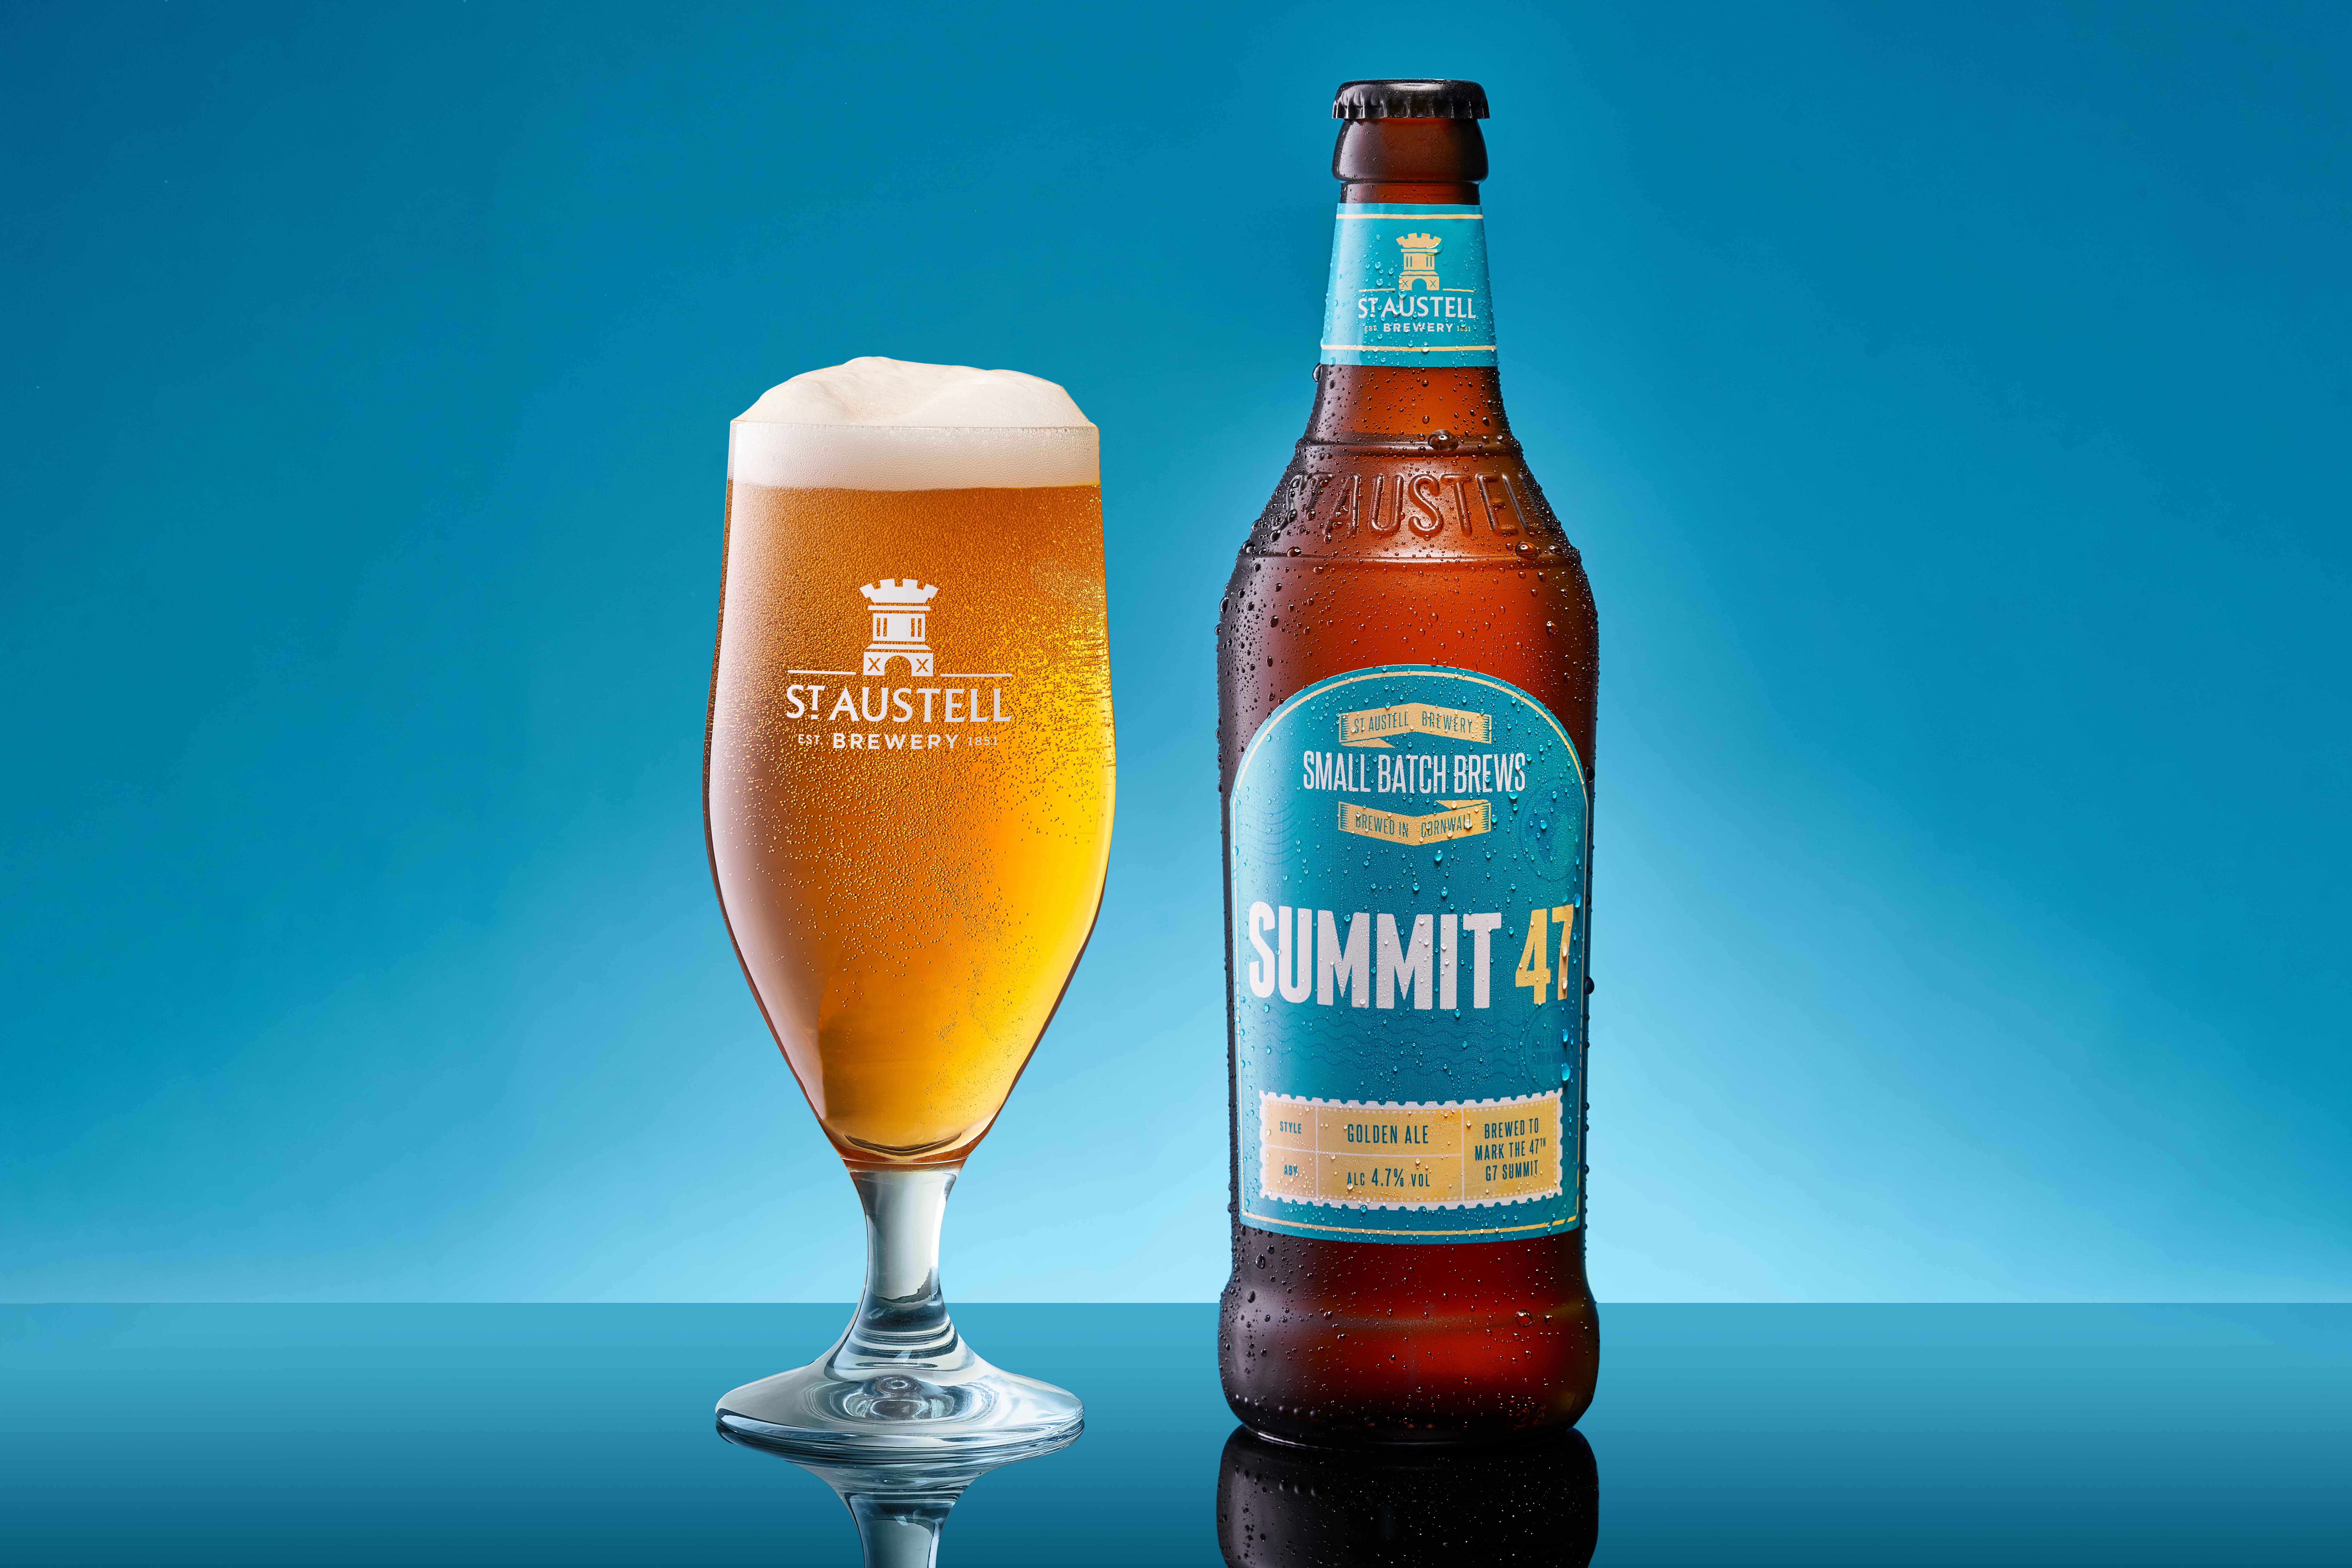 St Austell Brewery releases new beer to mark G7 summit